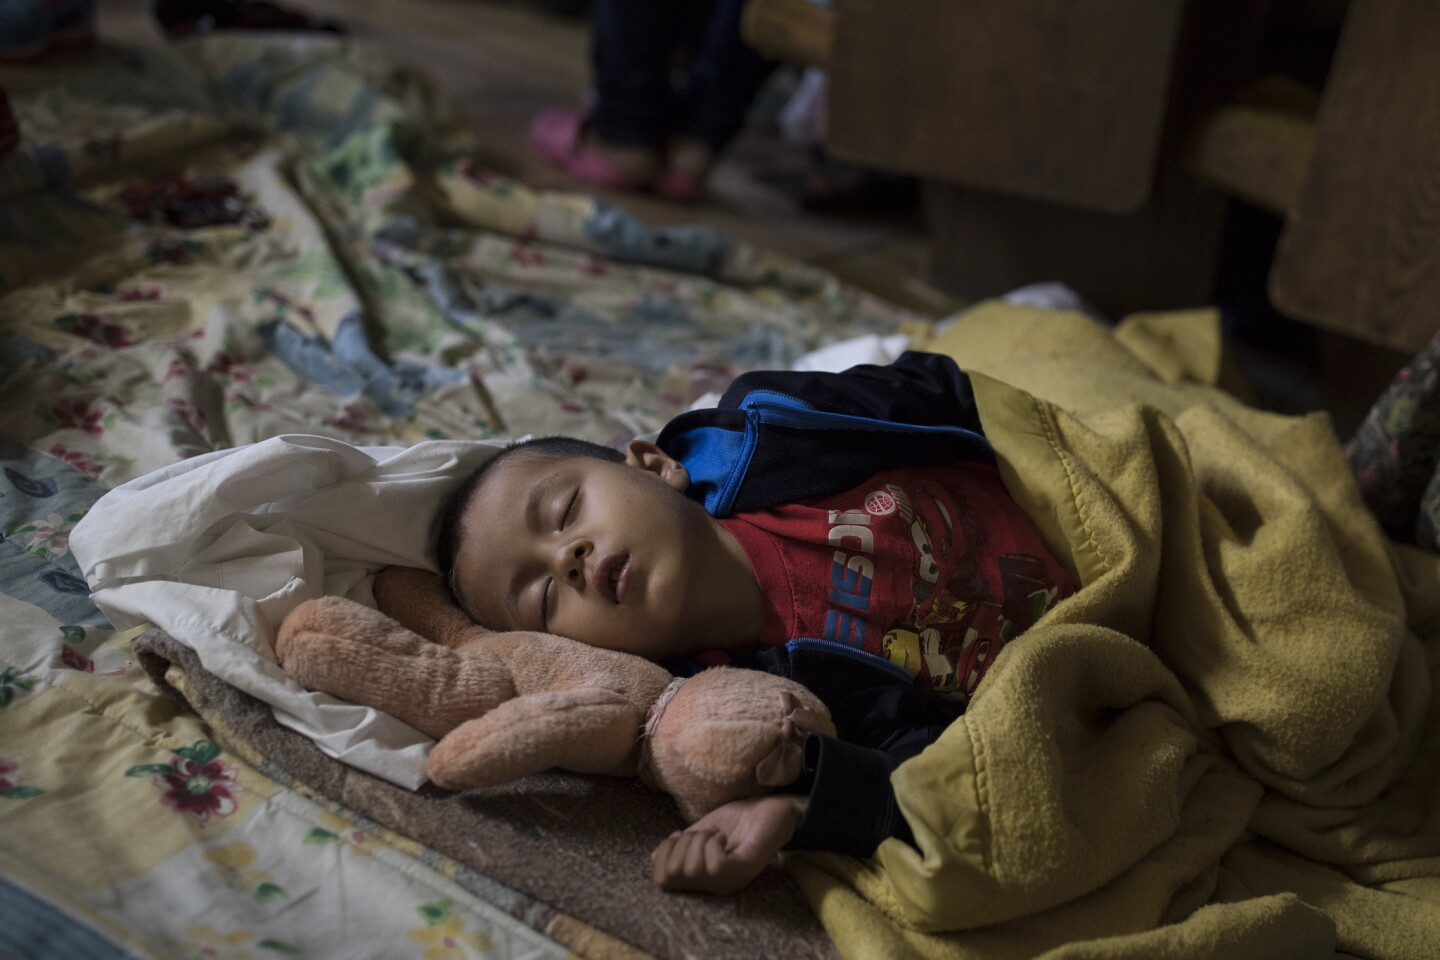 A Central American child who is traveling with a caravan of migrants sleeps at a shelter in Tijuana, Mexico, on April 29, 2018. U.S. immigration lawyers are telling Central Americans in a caravan of asylum-seekers that traveled through Mexico to the border with San Diego that they face possible separation from their children and detention for many months.